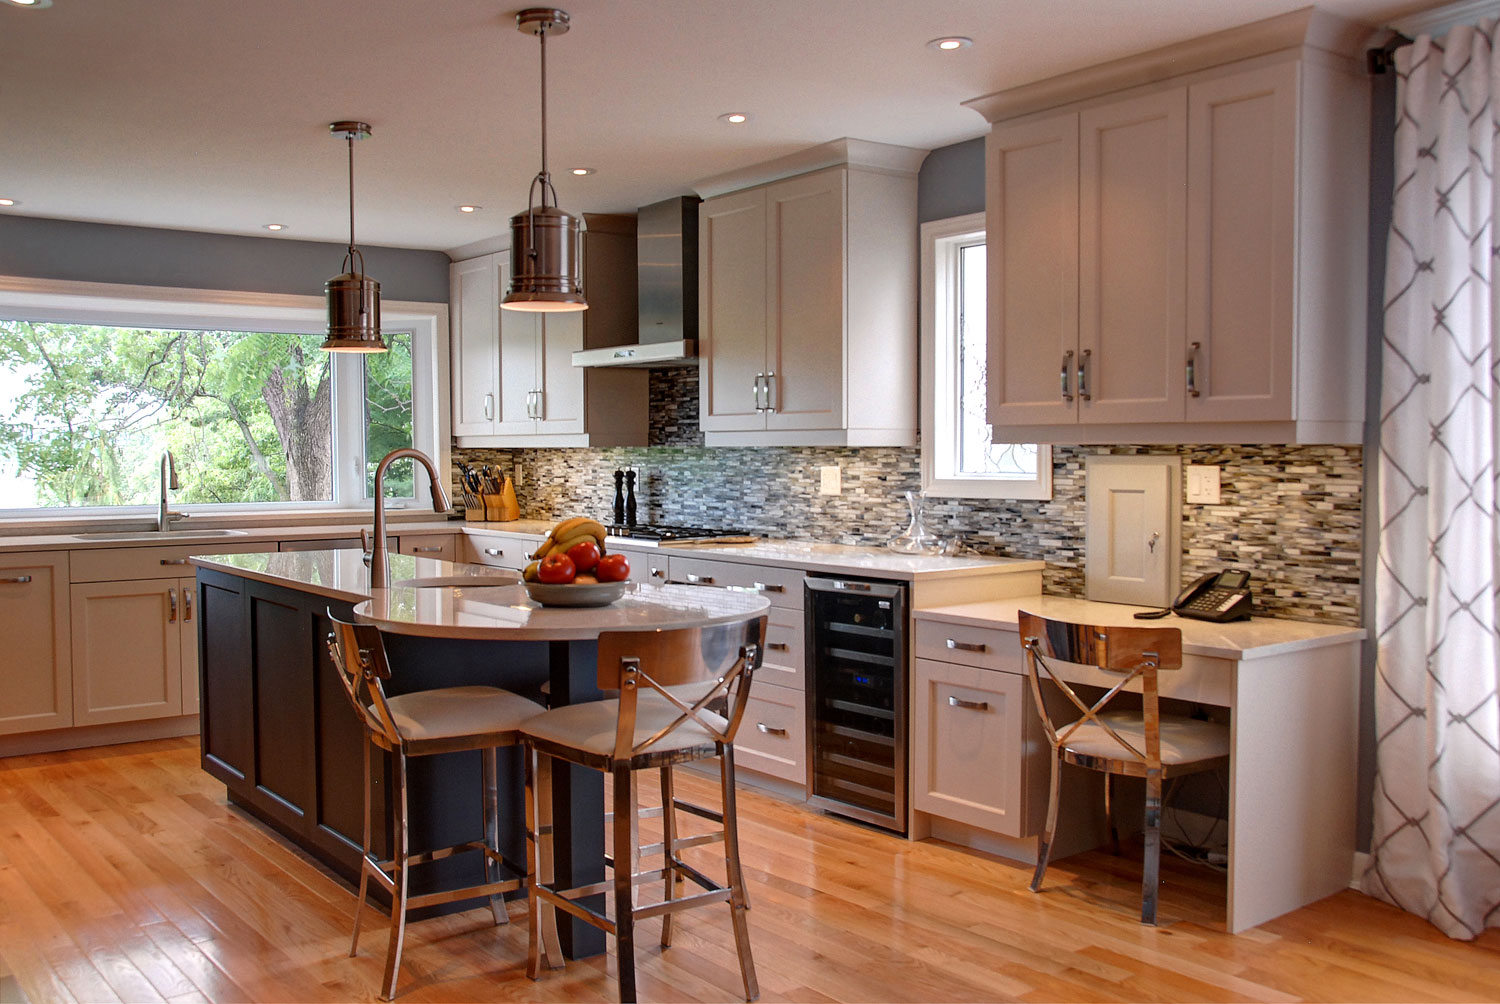 Lakefront cottage kitchen design and renovation with two tone cream and grey blue cabinets, a large island, stainless steel appliances, and hardwood floors - Total Living Concepts in Barrie Ontario